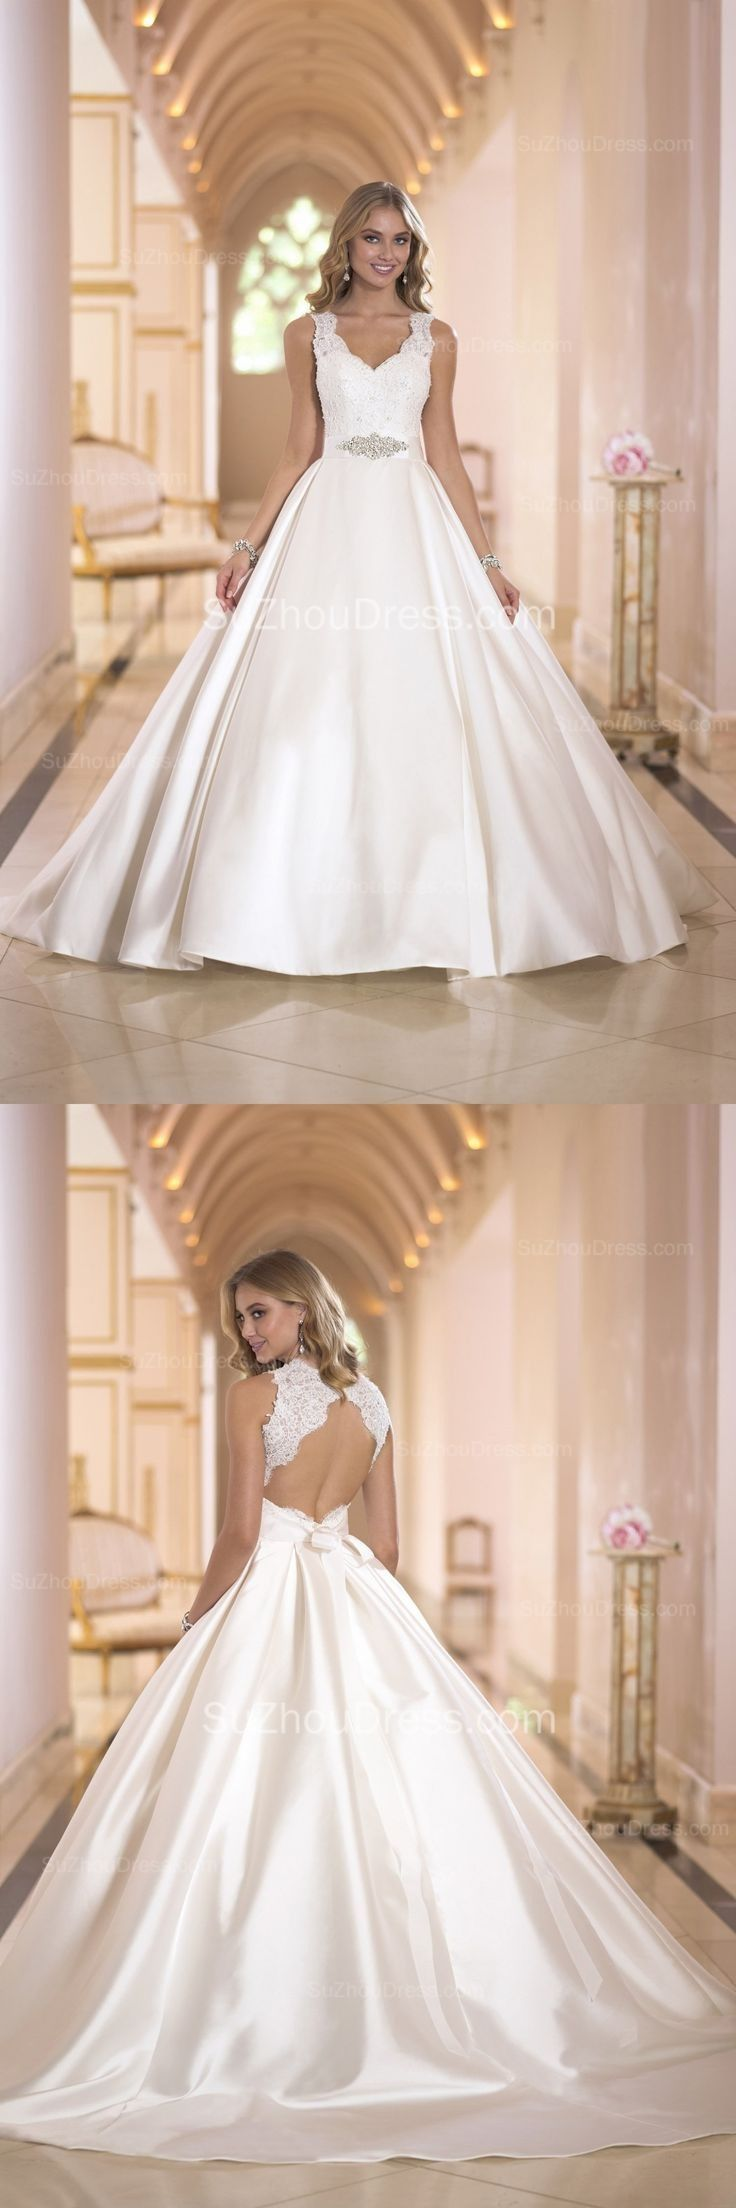 37+ Wedding dress with bow on back info